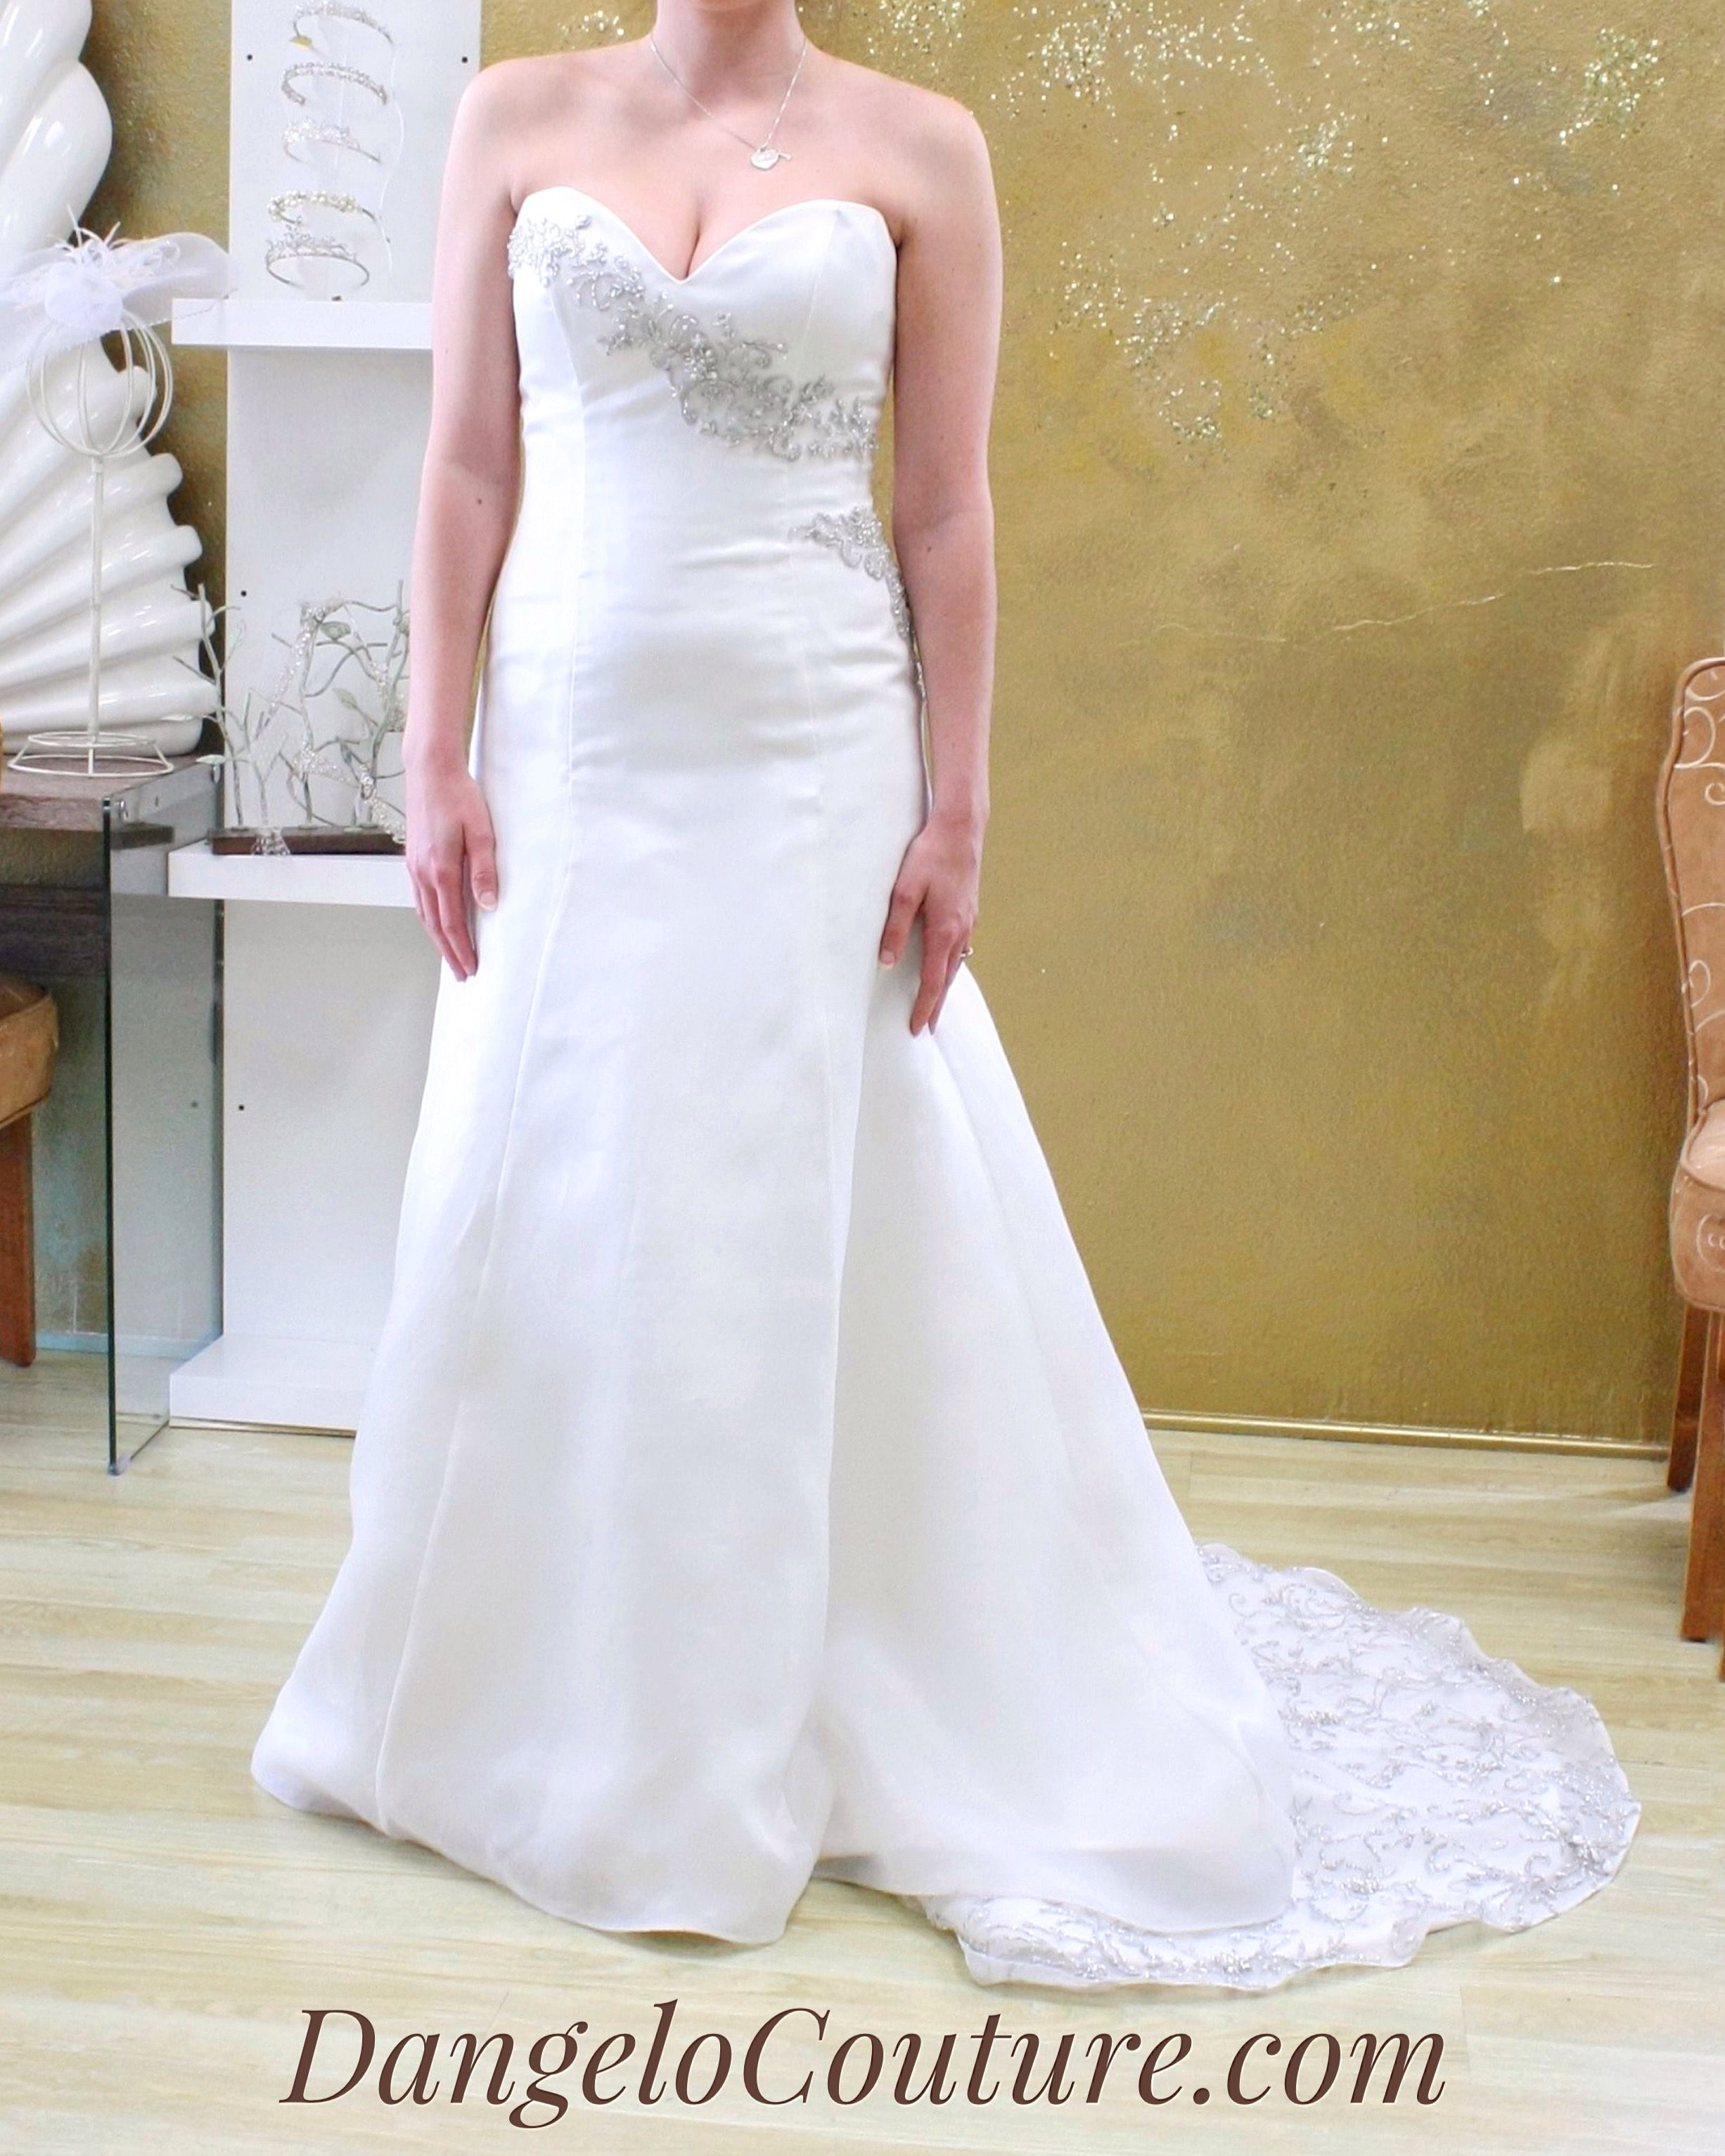 Wedding Dresses At Du0027Angelo Couture Bridal In San Diego, California.  Beautiful Wedding